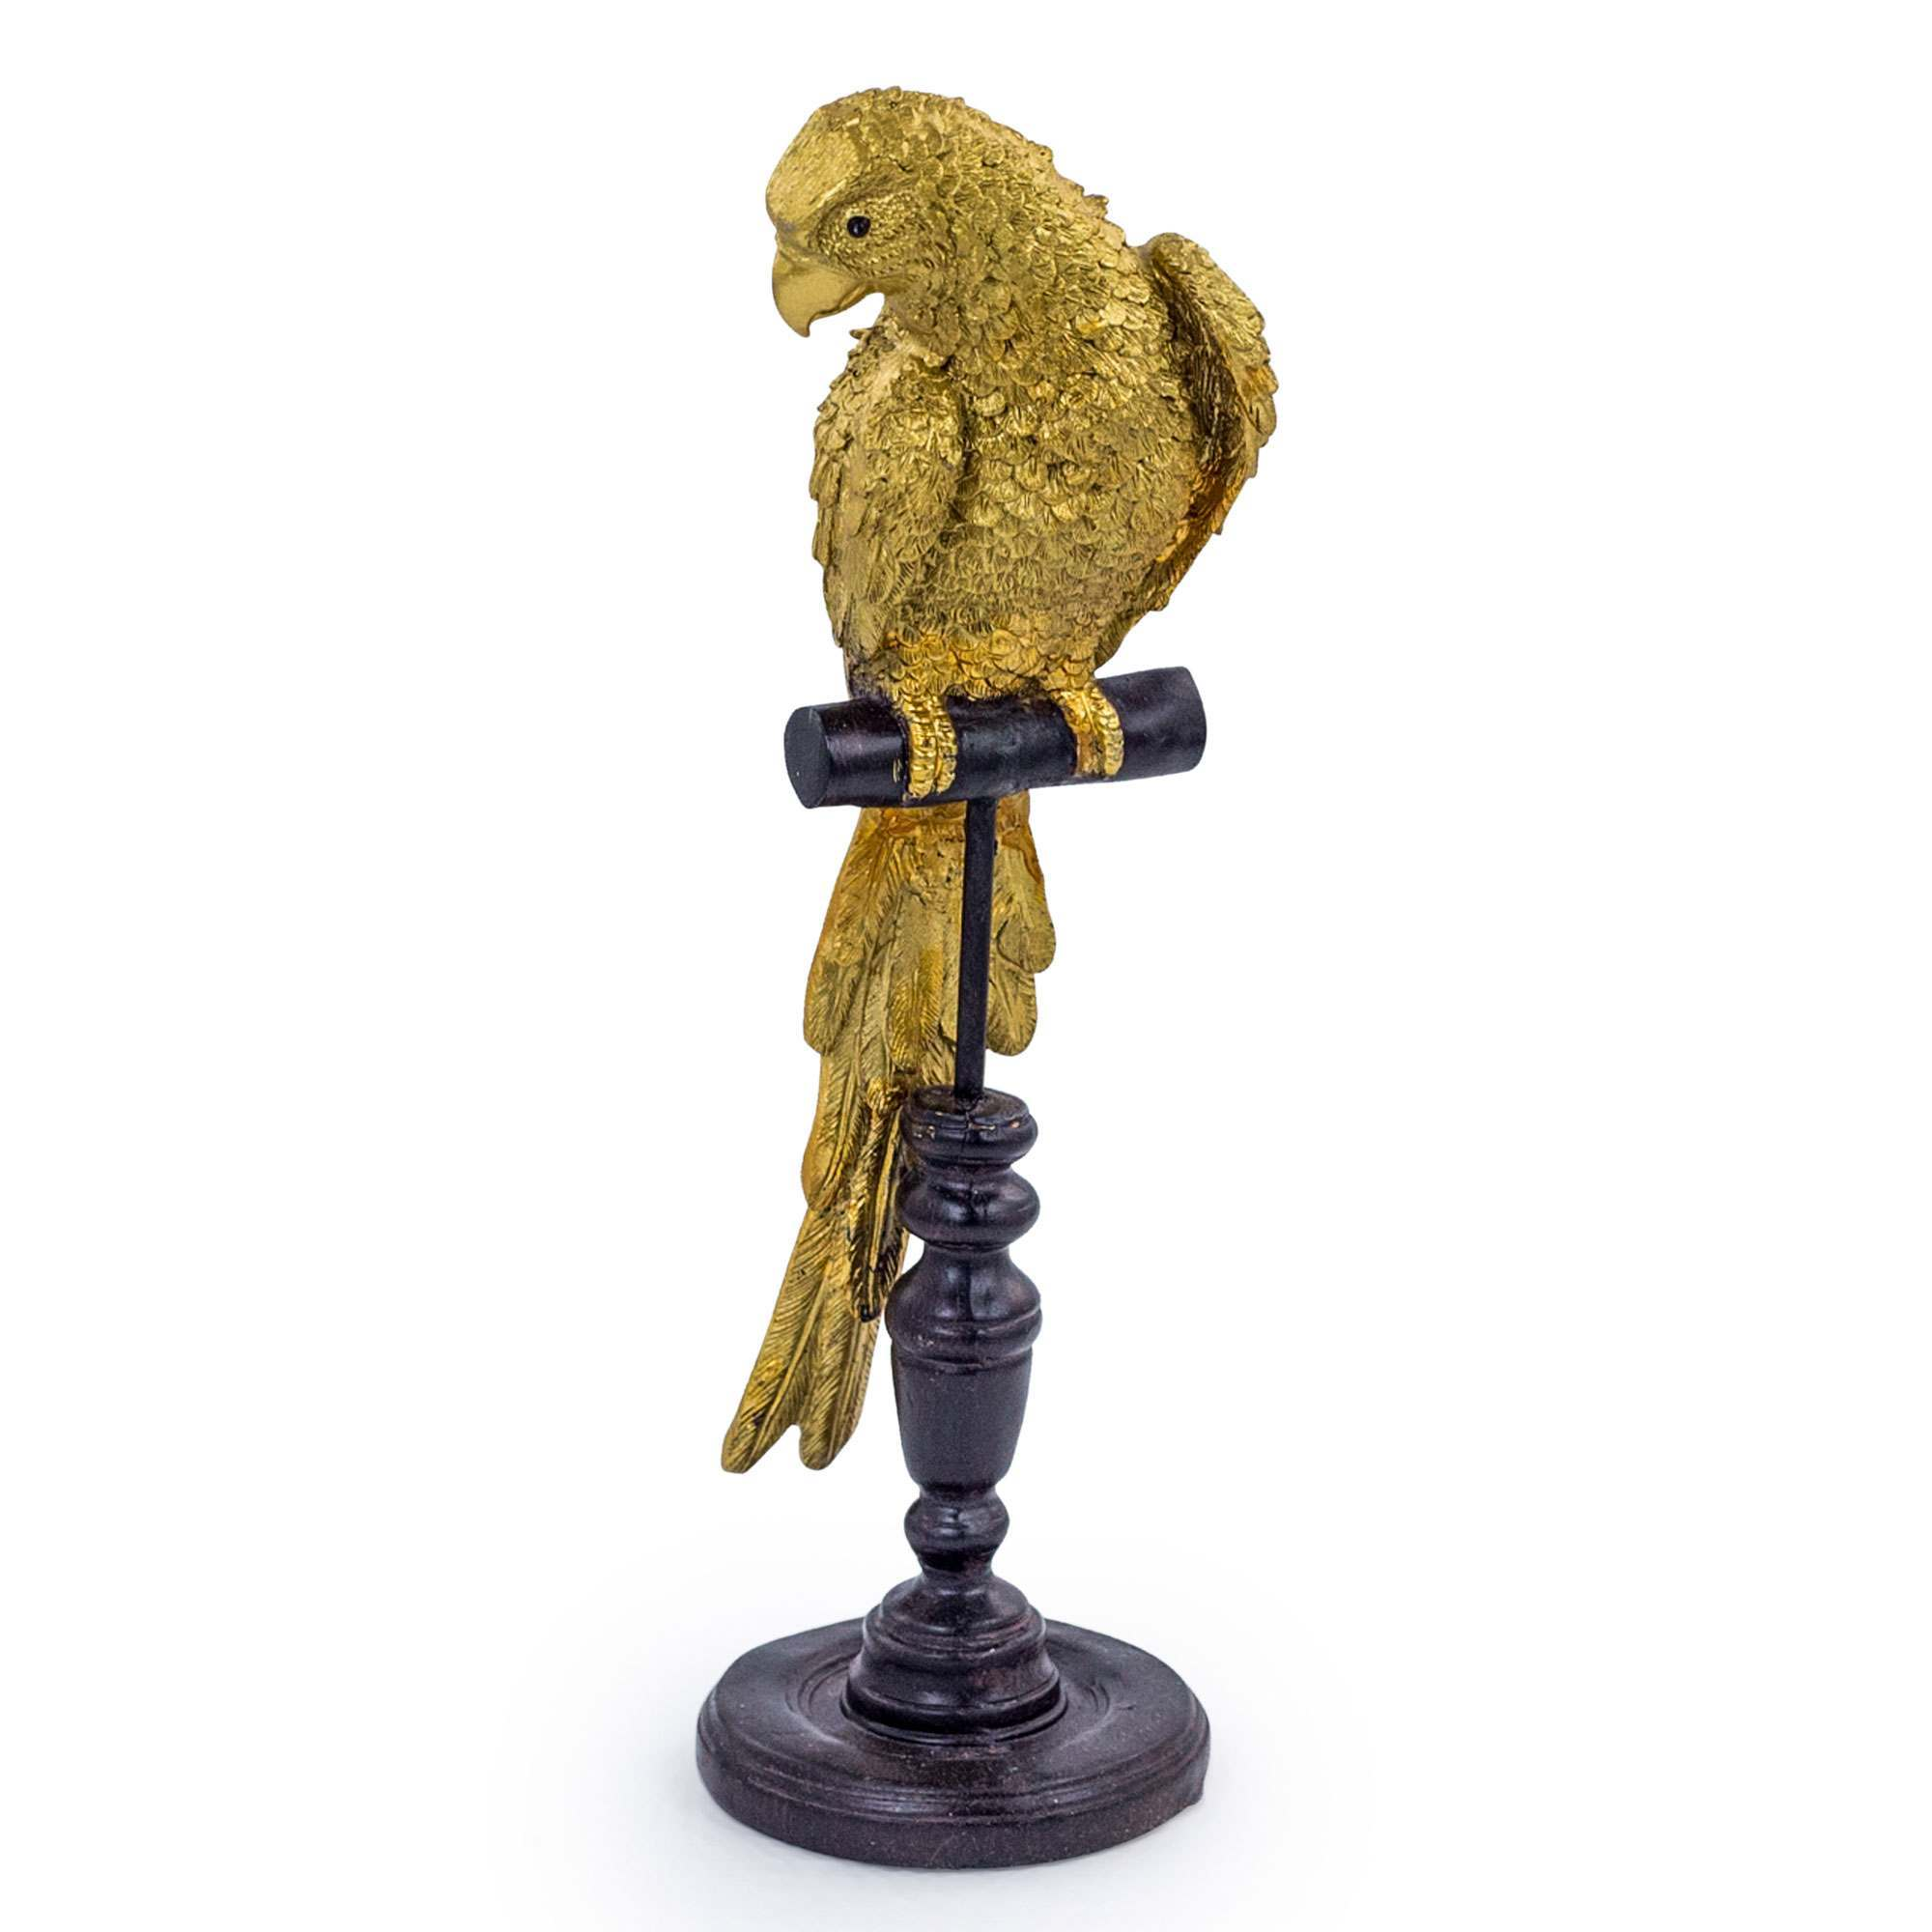 An image of Gold Parrot on Perch